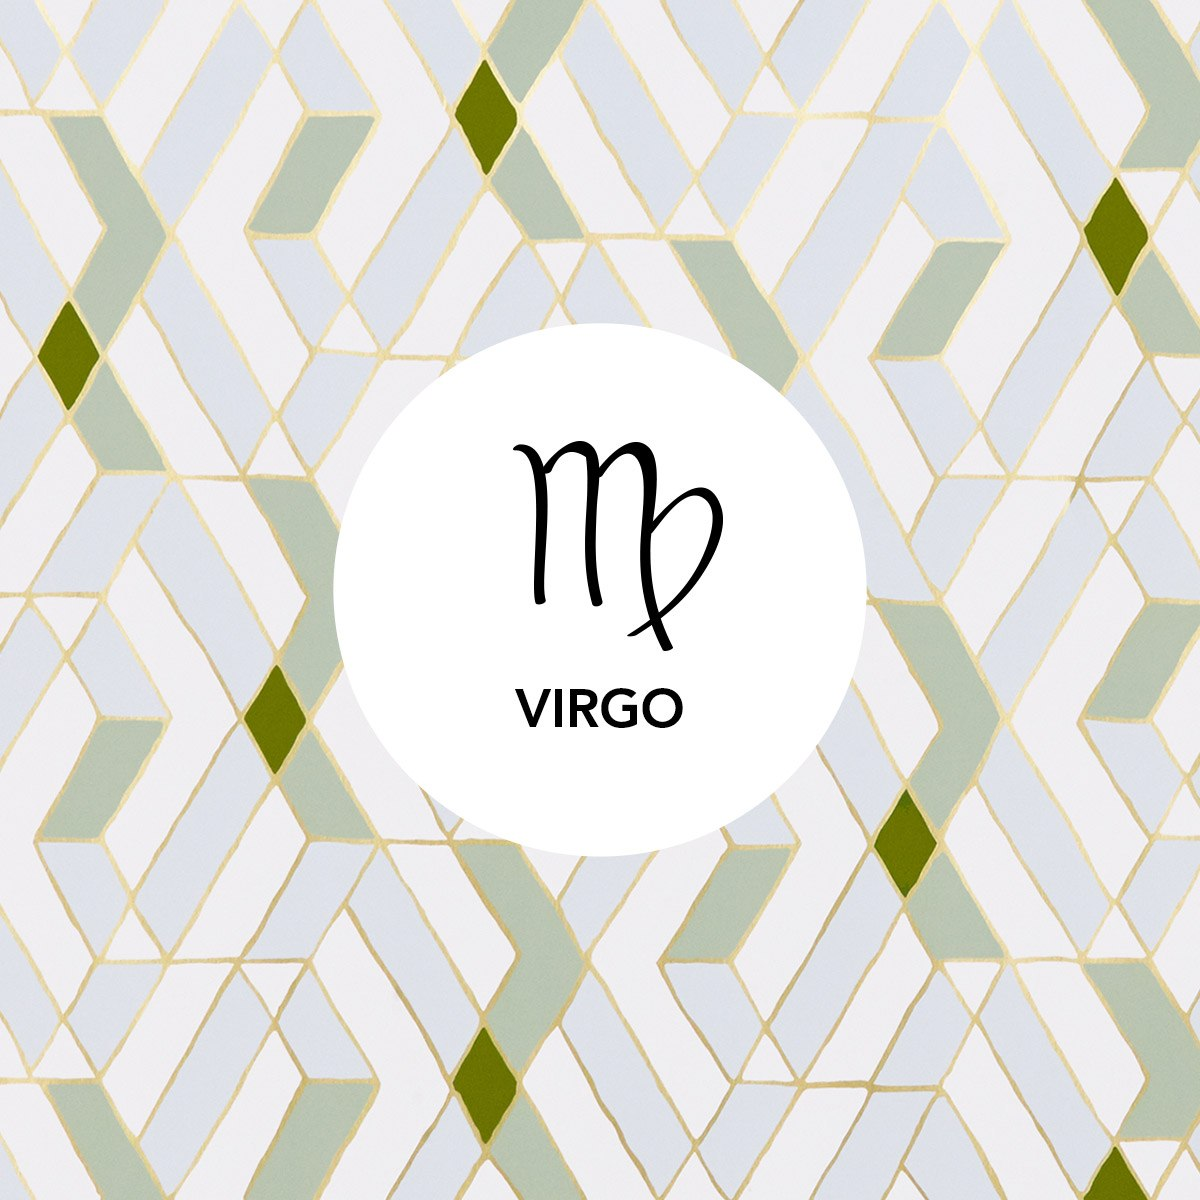 Virgo | Quilt Celadon wallpaper | Heath Ceramics | Hygge & West